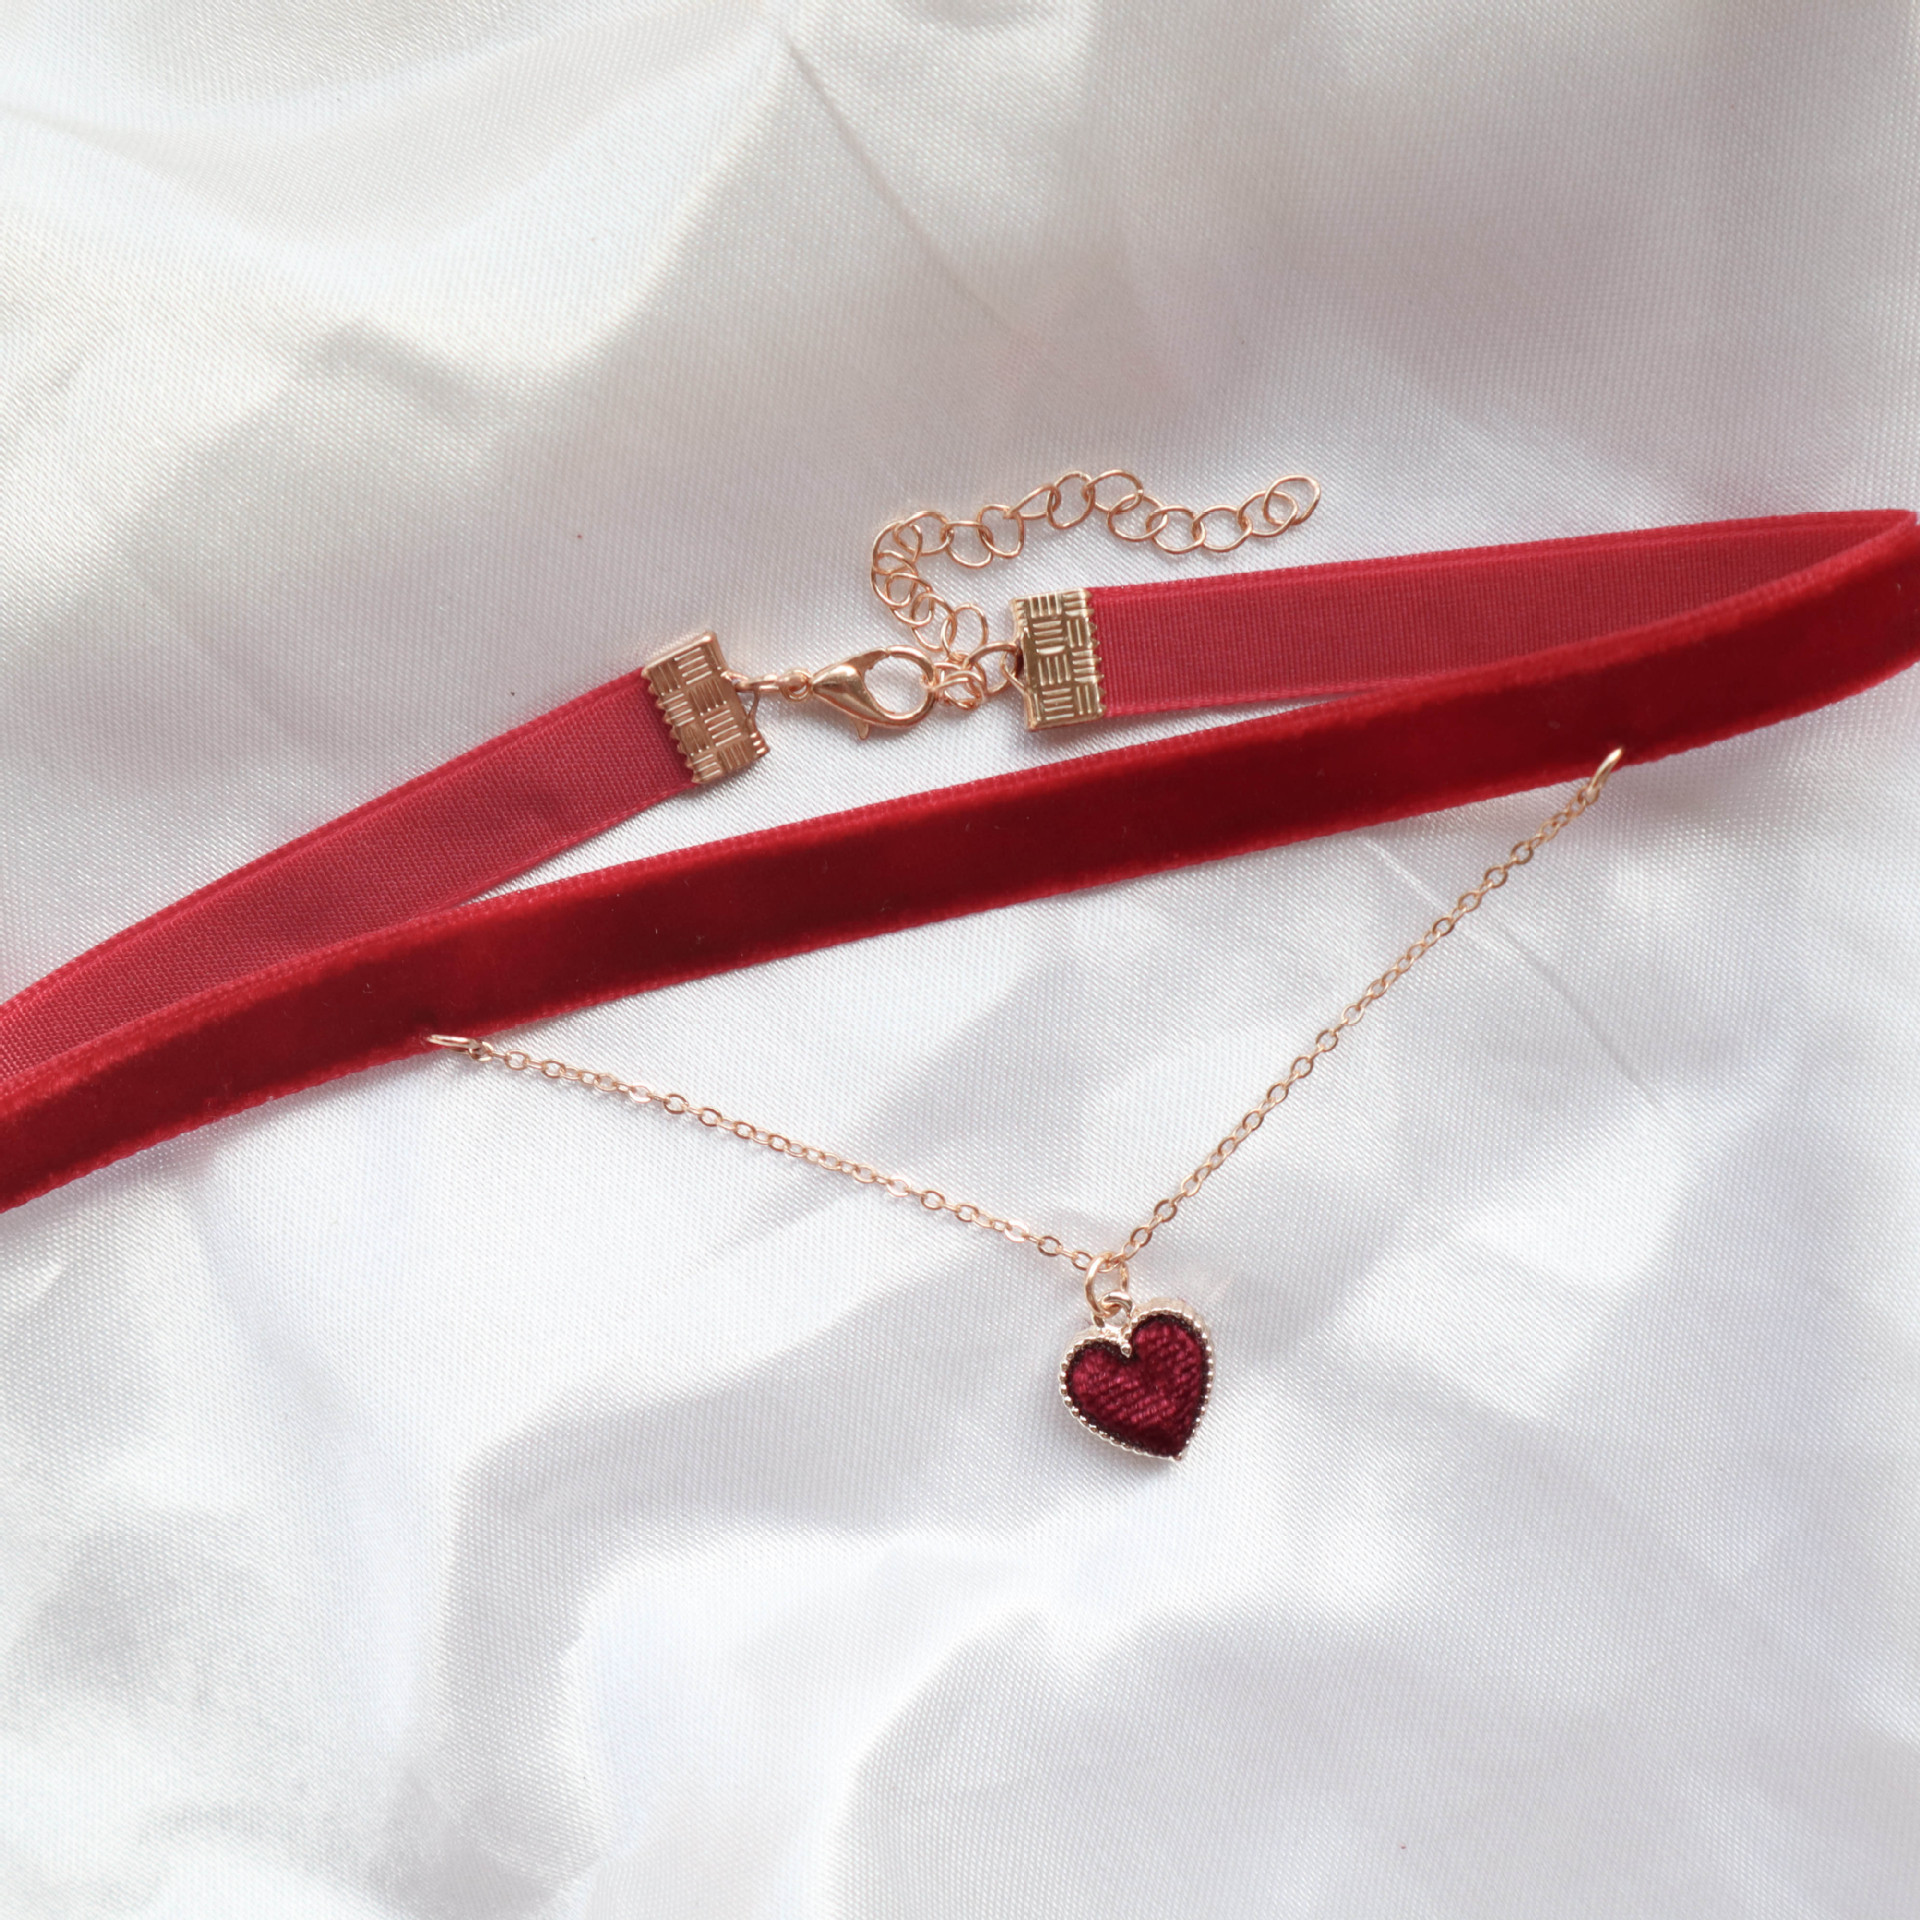 Pretty Heart Pendant Necklace for Valentine's Day Gift